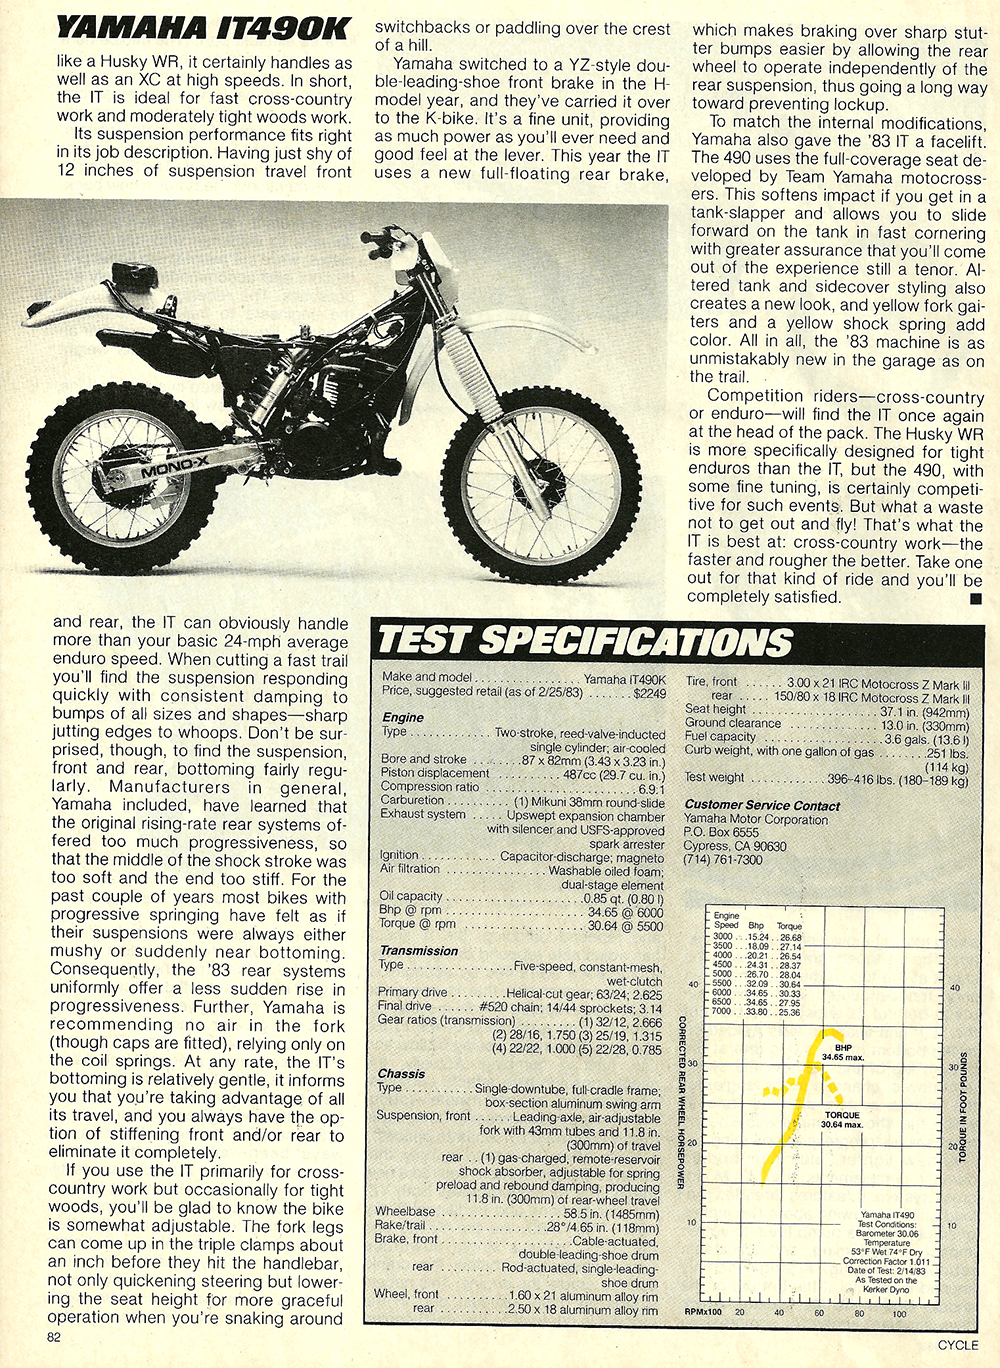 1983 Yamaha IT490K road test 6.jpg